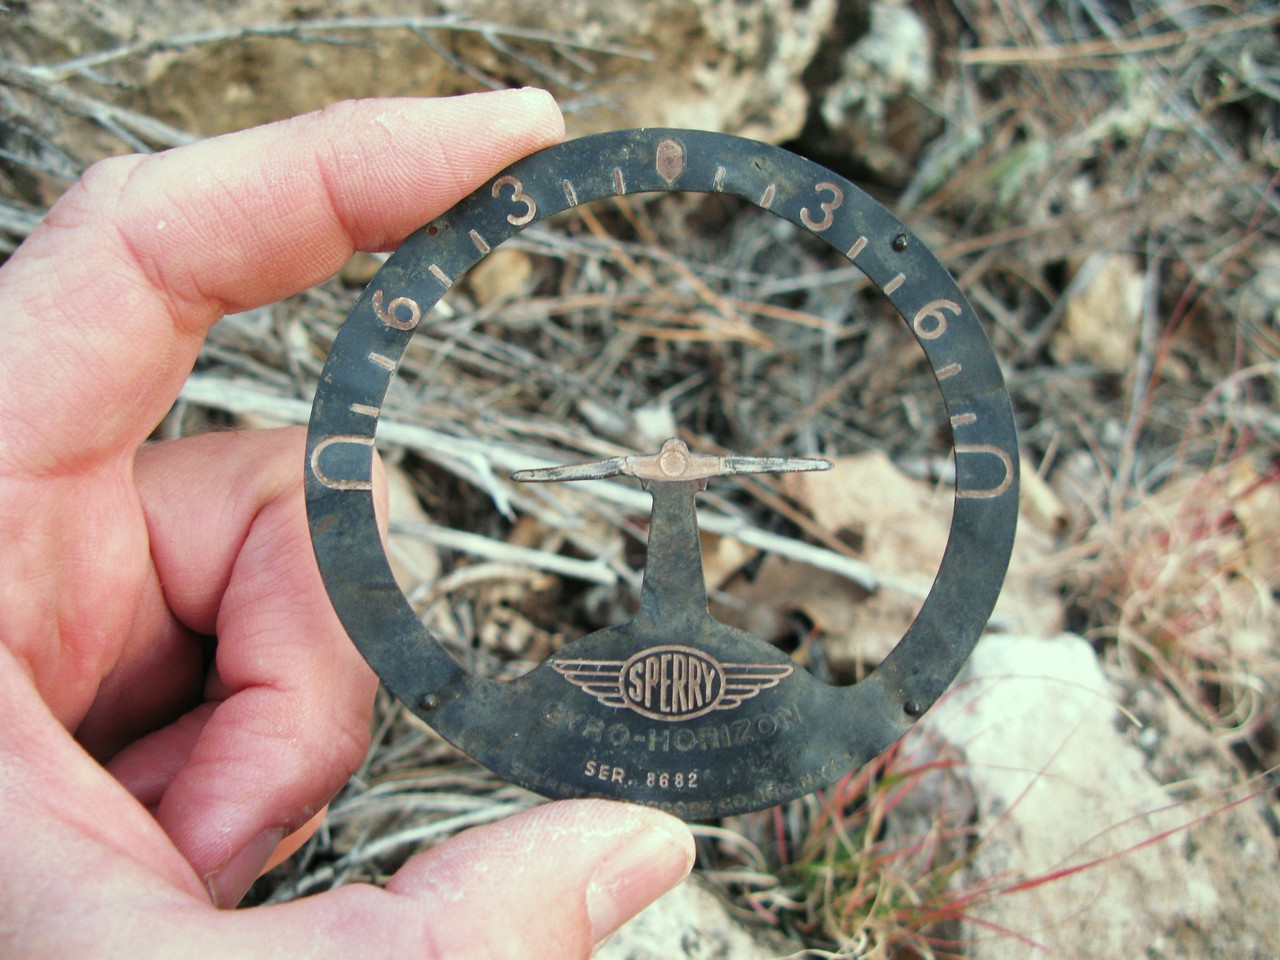 This faceplate from the Sperry Auxiliary Gyro Horizon instrument was located during the early 1990s with other cockpit wreckage debris. (Lostflights Photo)